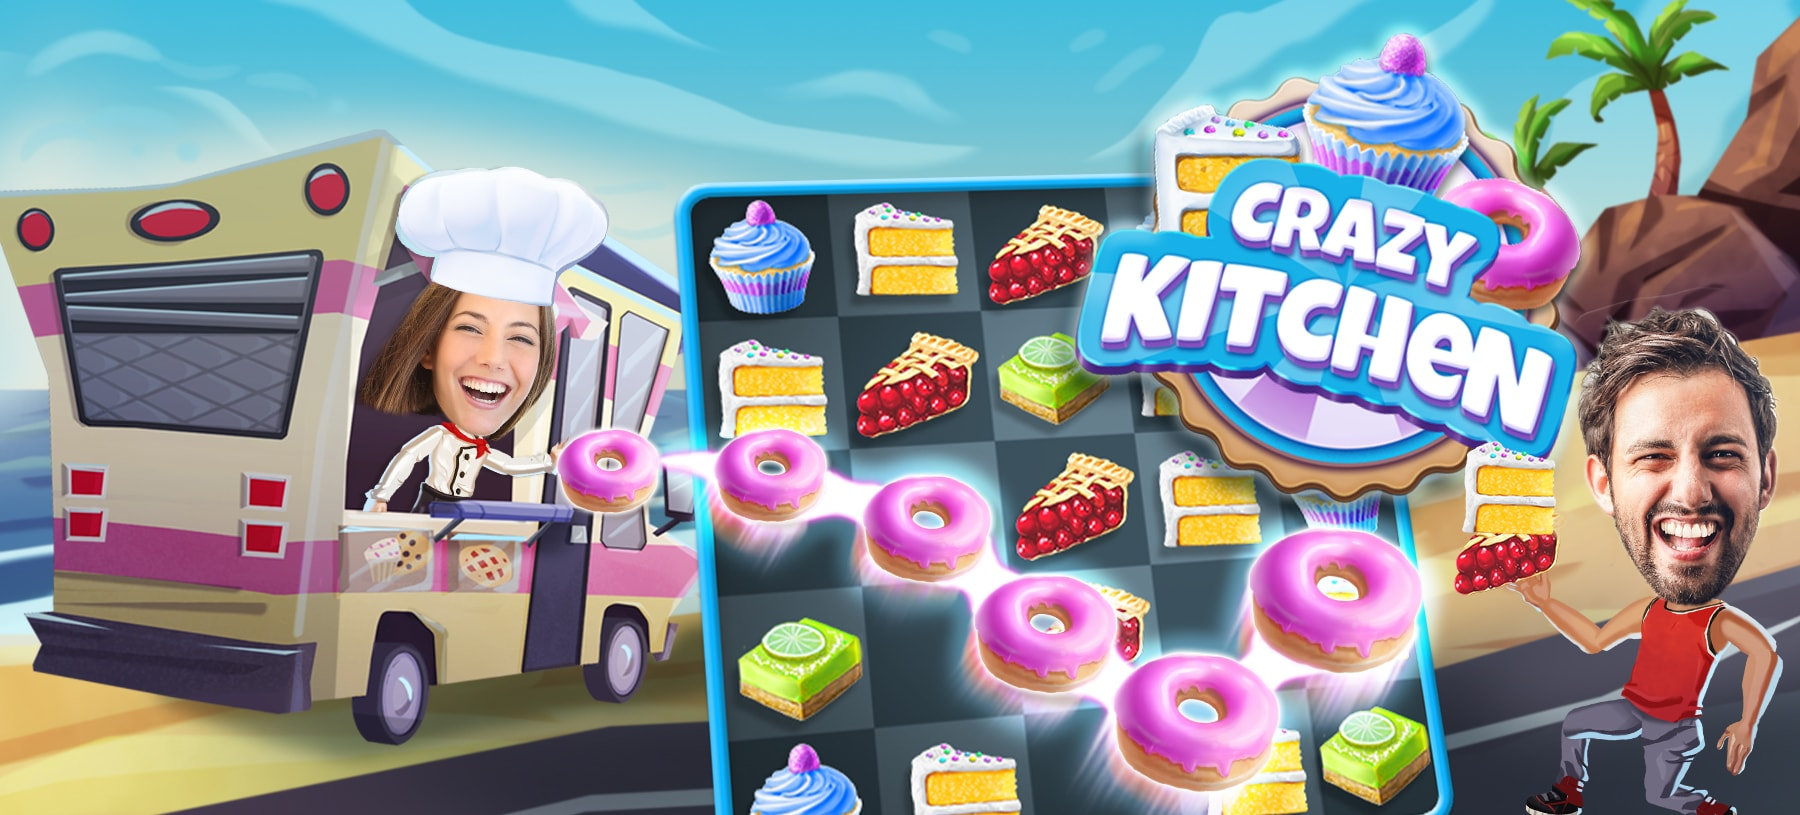 Crazy Kitchen Hero Image